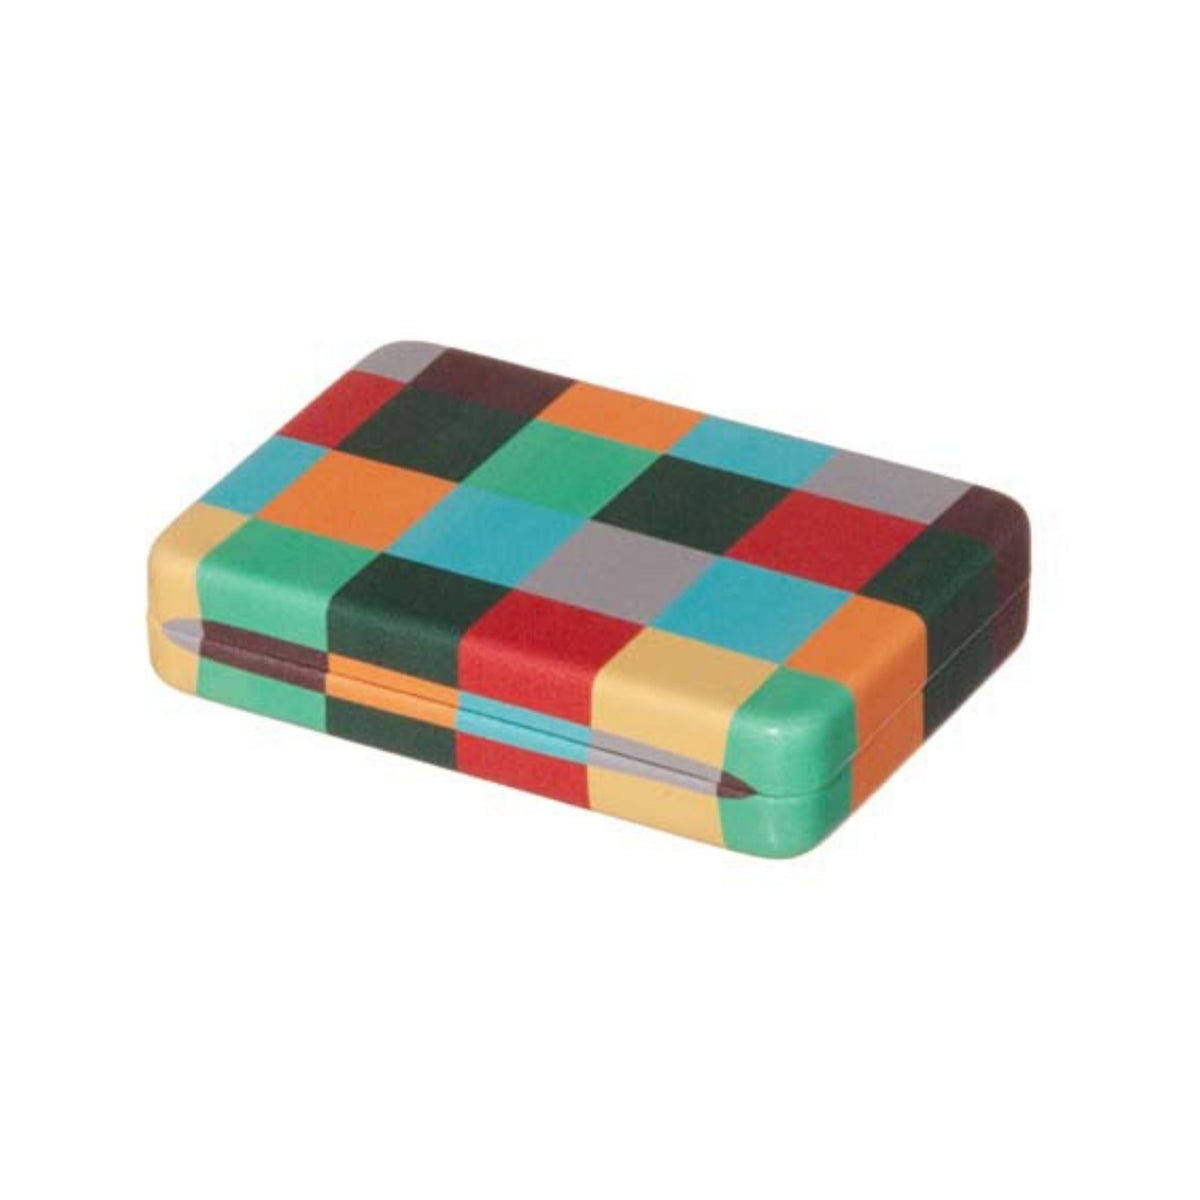 Travel Jewellery Box (geometric design)